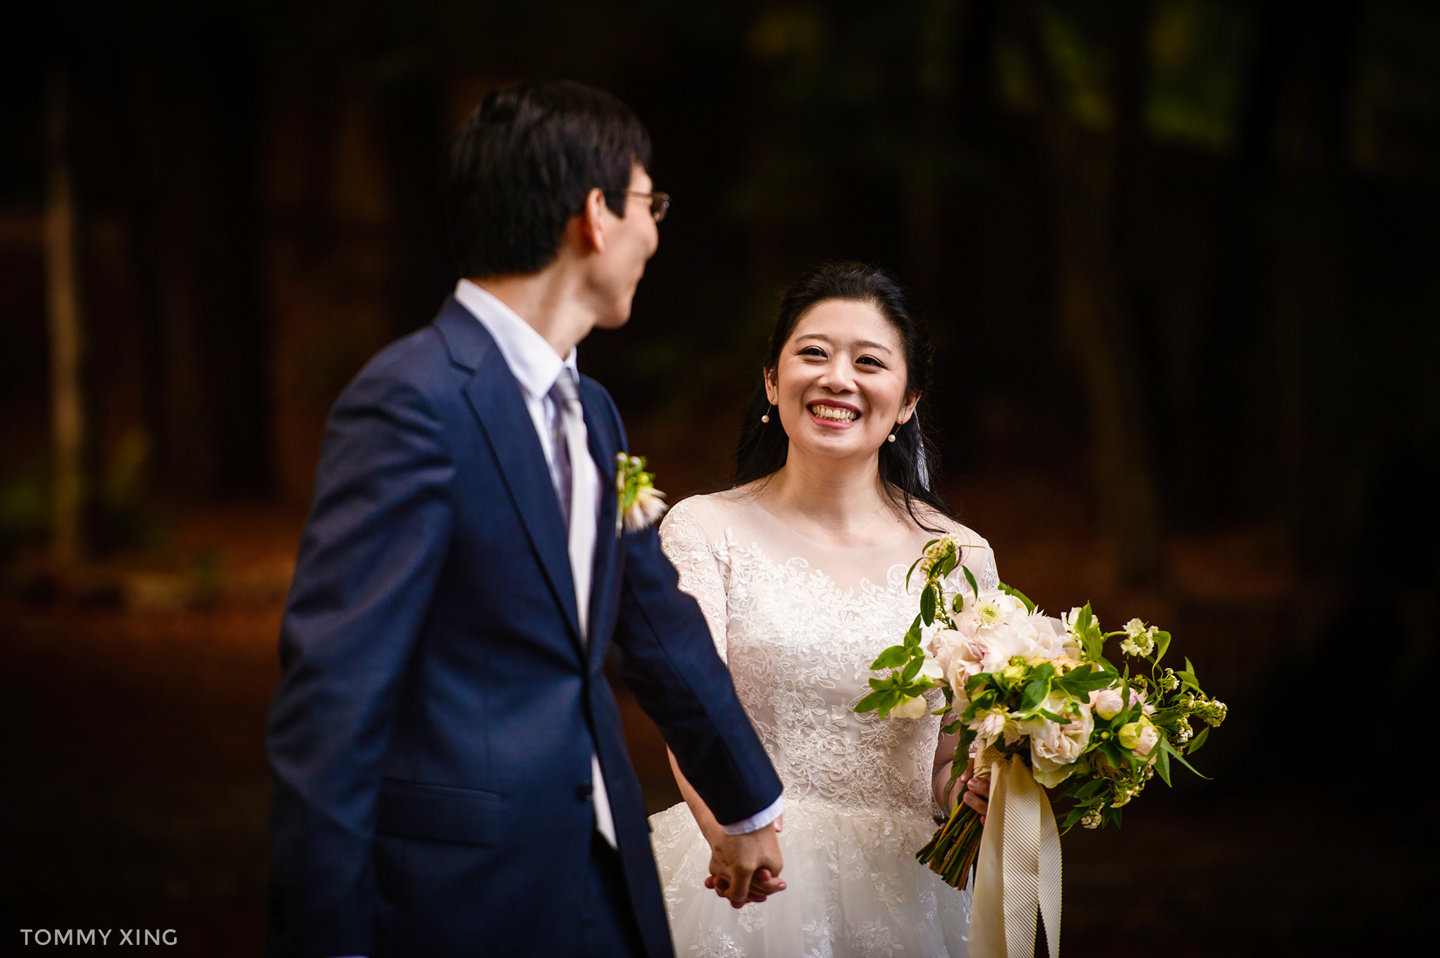 San Francisco Wedding Photography Valley Presbyterian Church WEDDING Tommy Xing Photography 洛杉矶旧金山婚礼婚纱照摄影师098.jpg